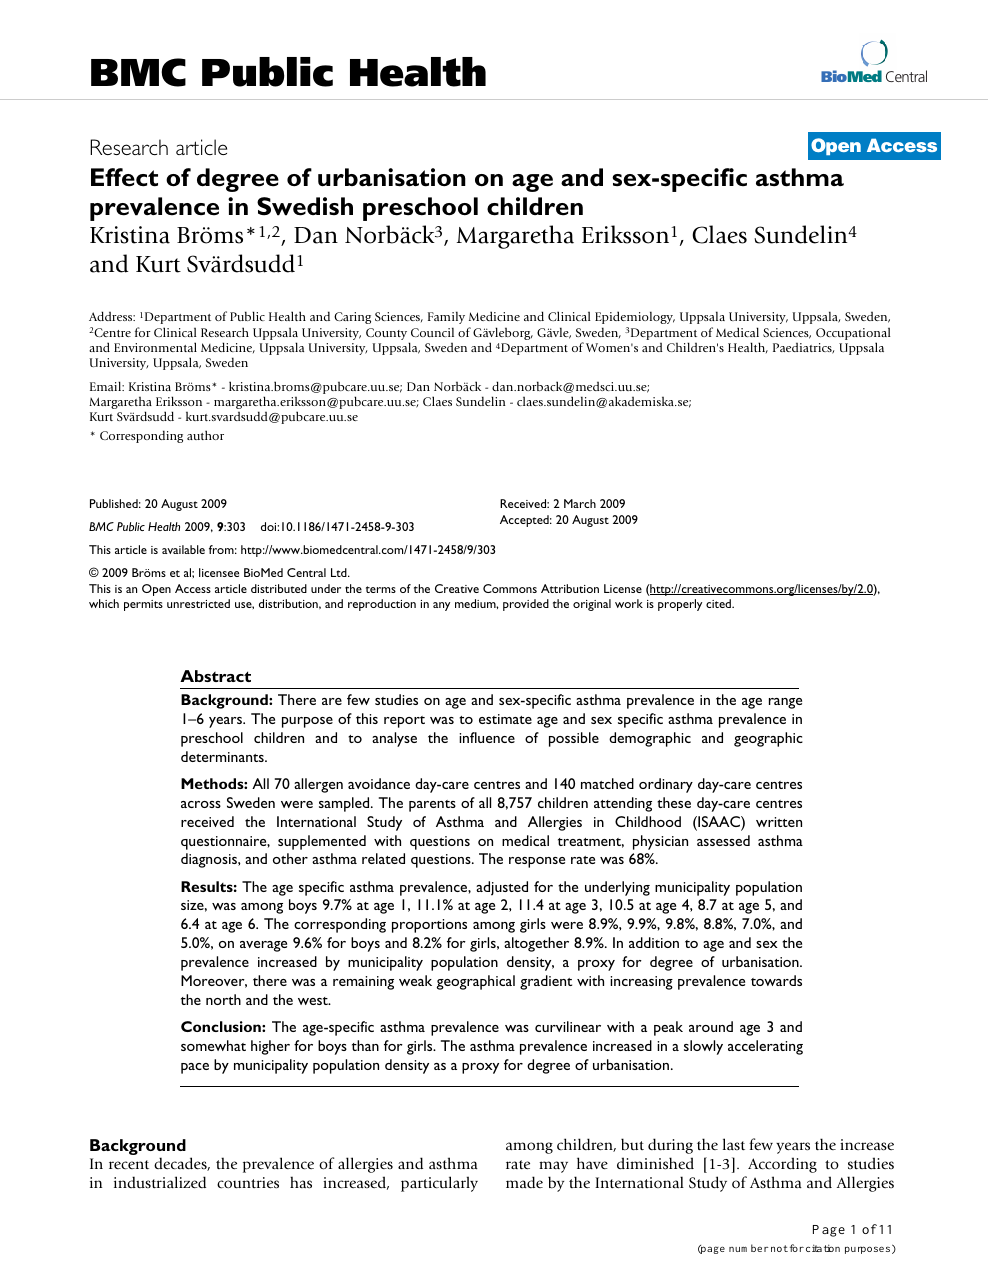 Effect of degree of urbanisation on age and sex-specific